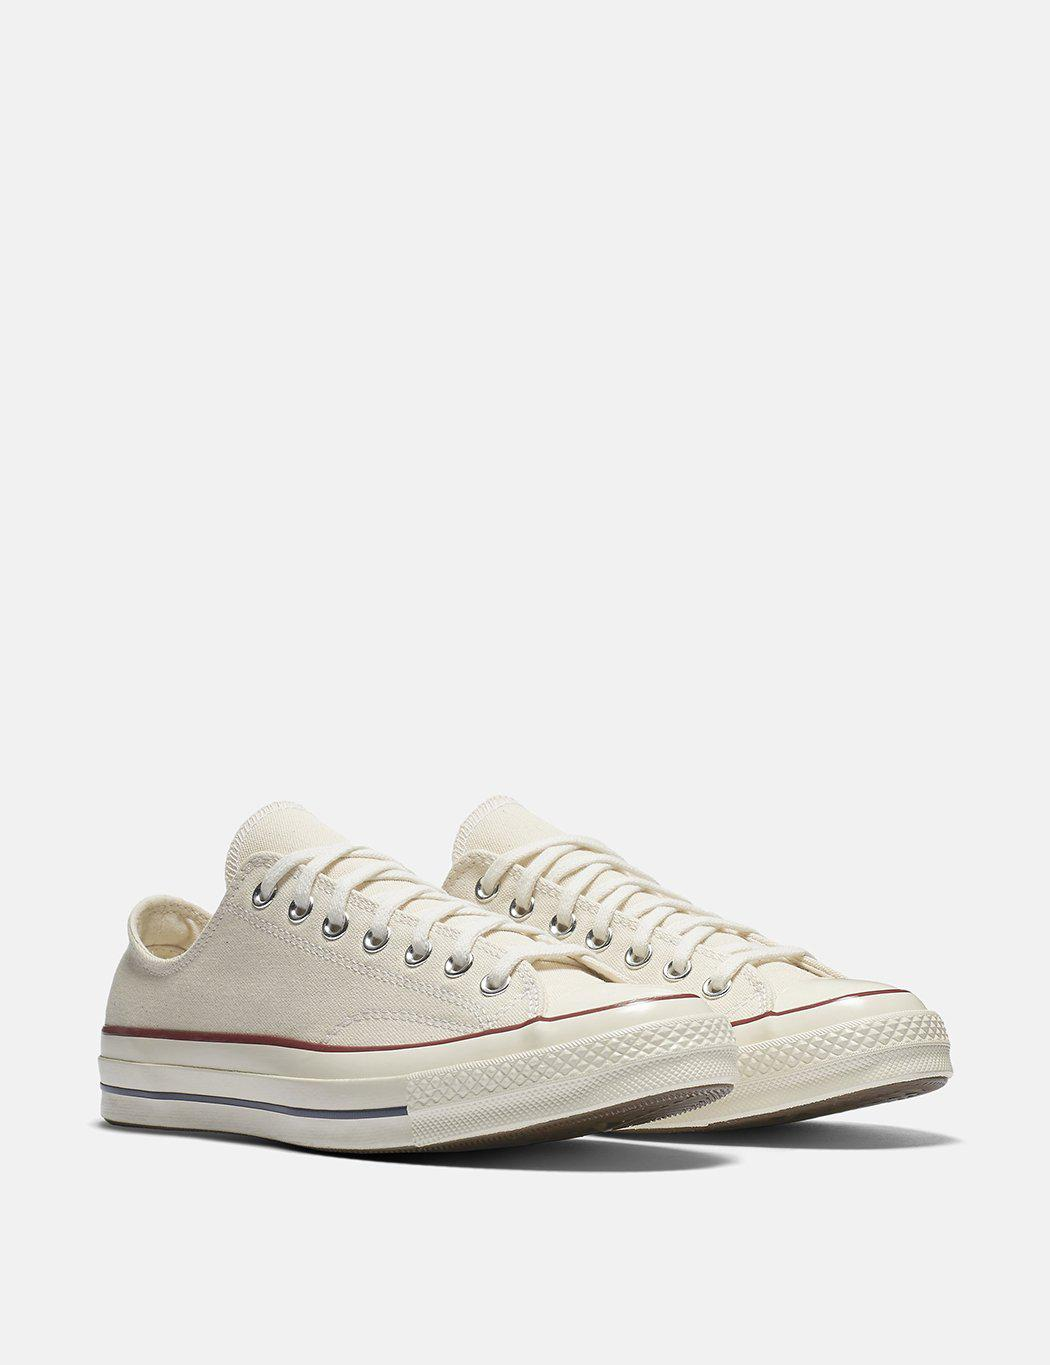 a7068f2aa43d Converse 70 s Chuck Taylor Low 162062c (canvas) for Men - Lyst